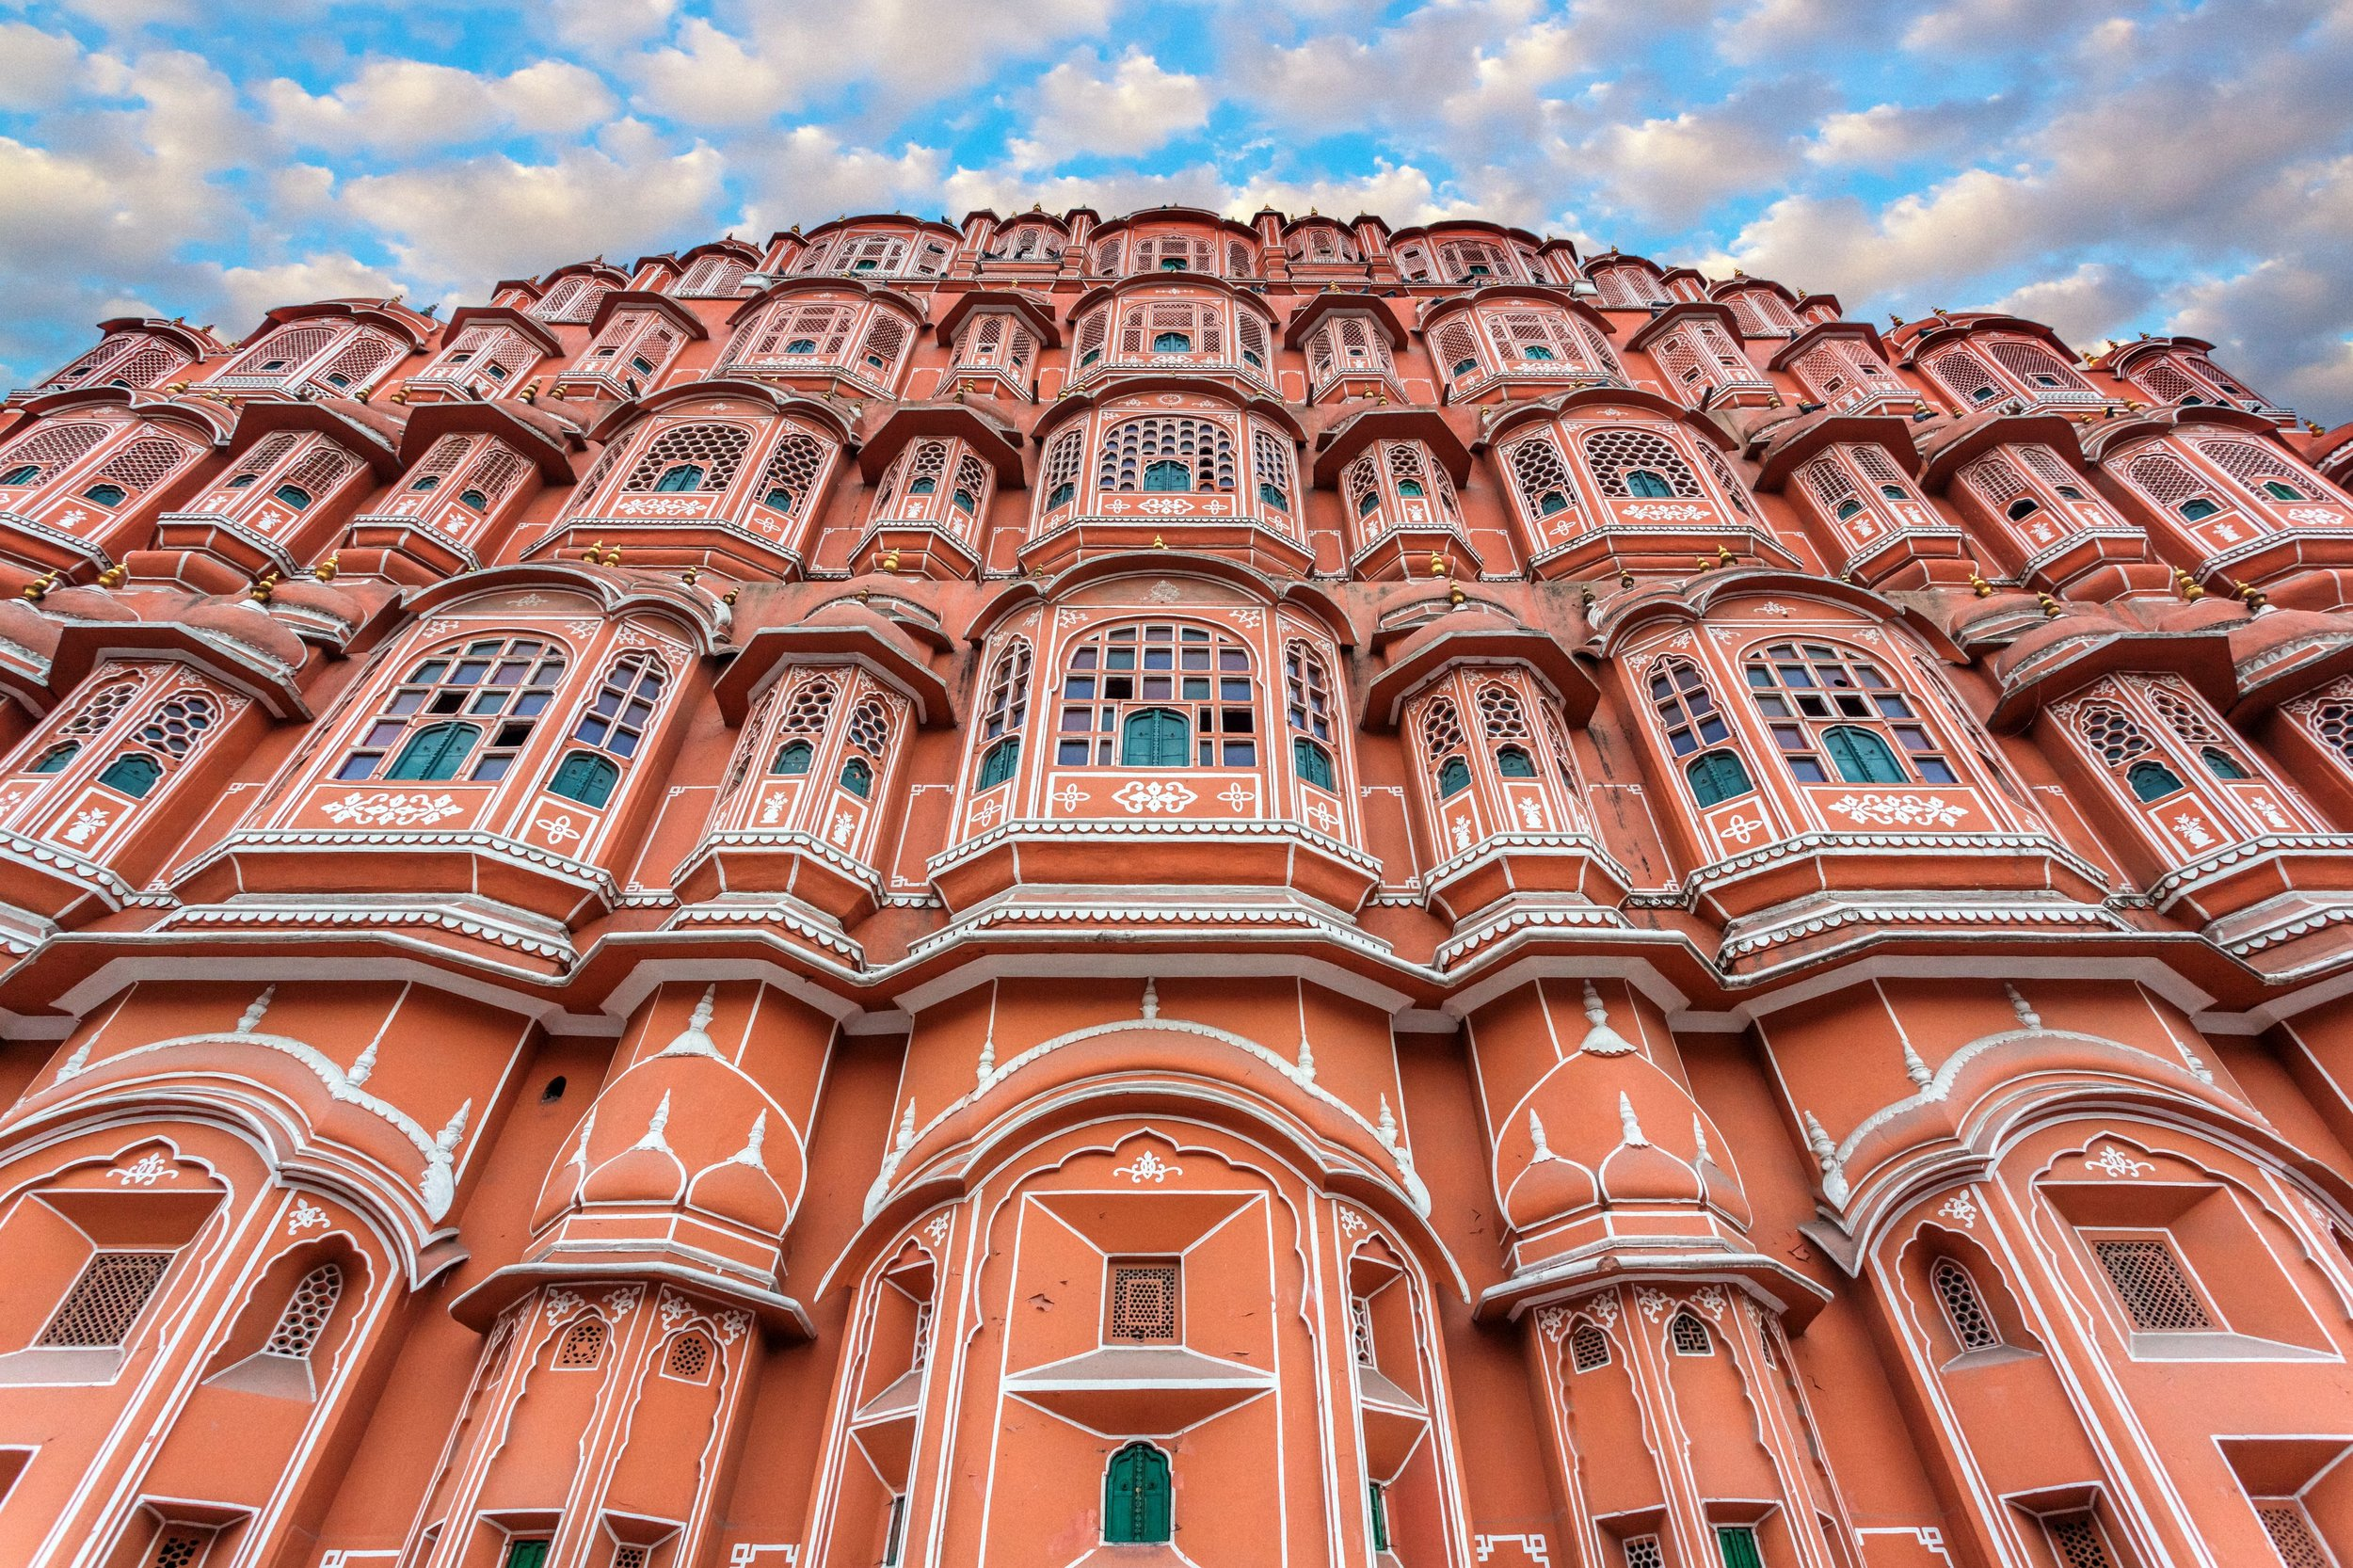 facade-of-the-hawa-mahal-palace-of-winds-in-jaipur-rajasthan-india-636950806-58e24eed5f9b58ef7e556bbb.jpg